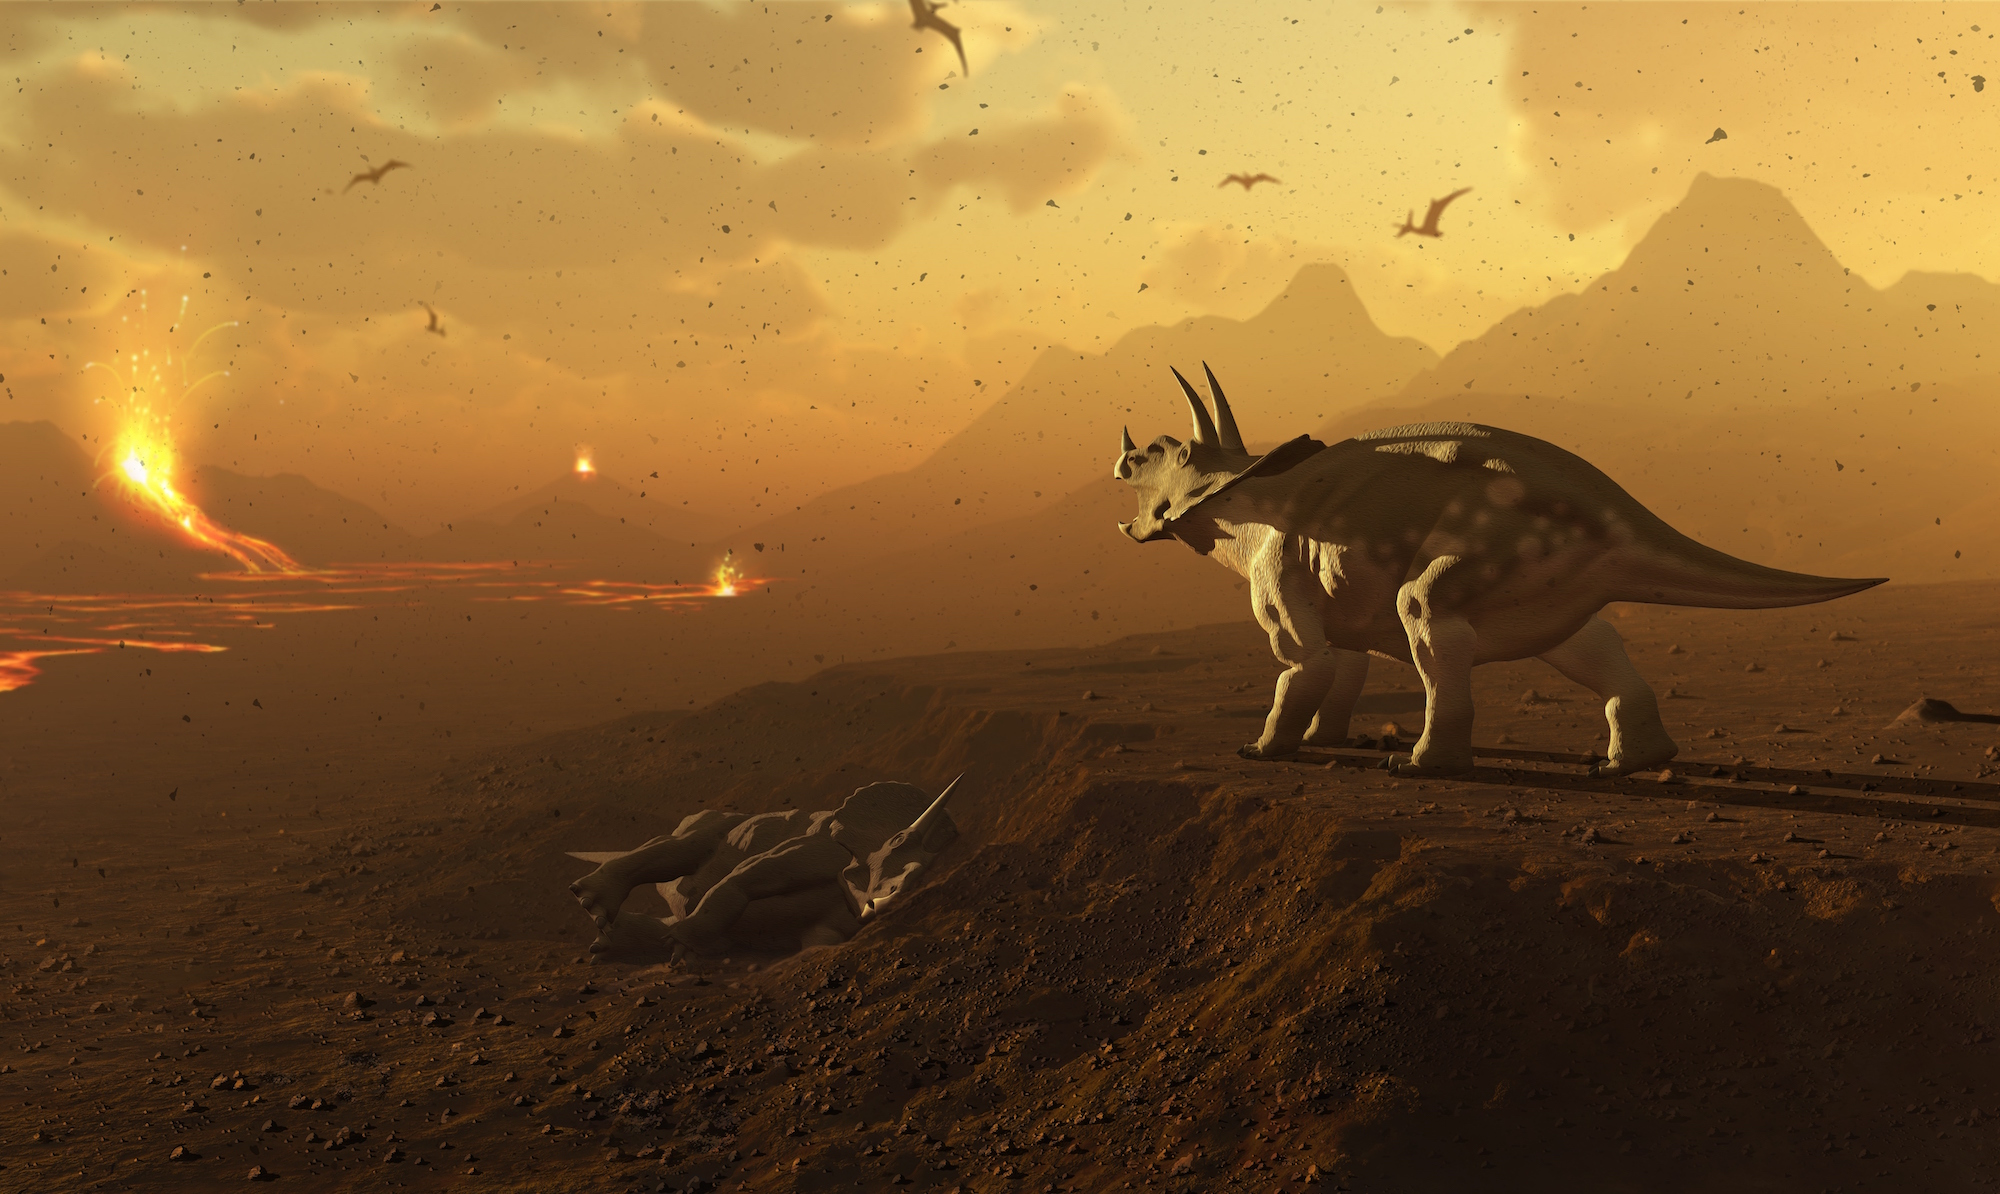 Triceratops and volcanic landscape (Mark Garlick/Getty Images)